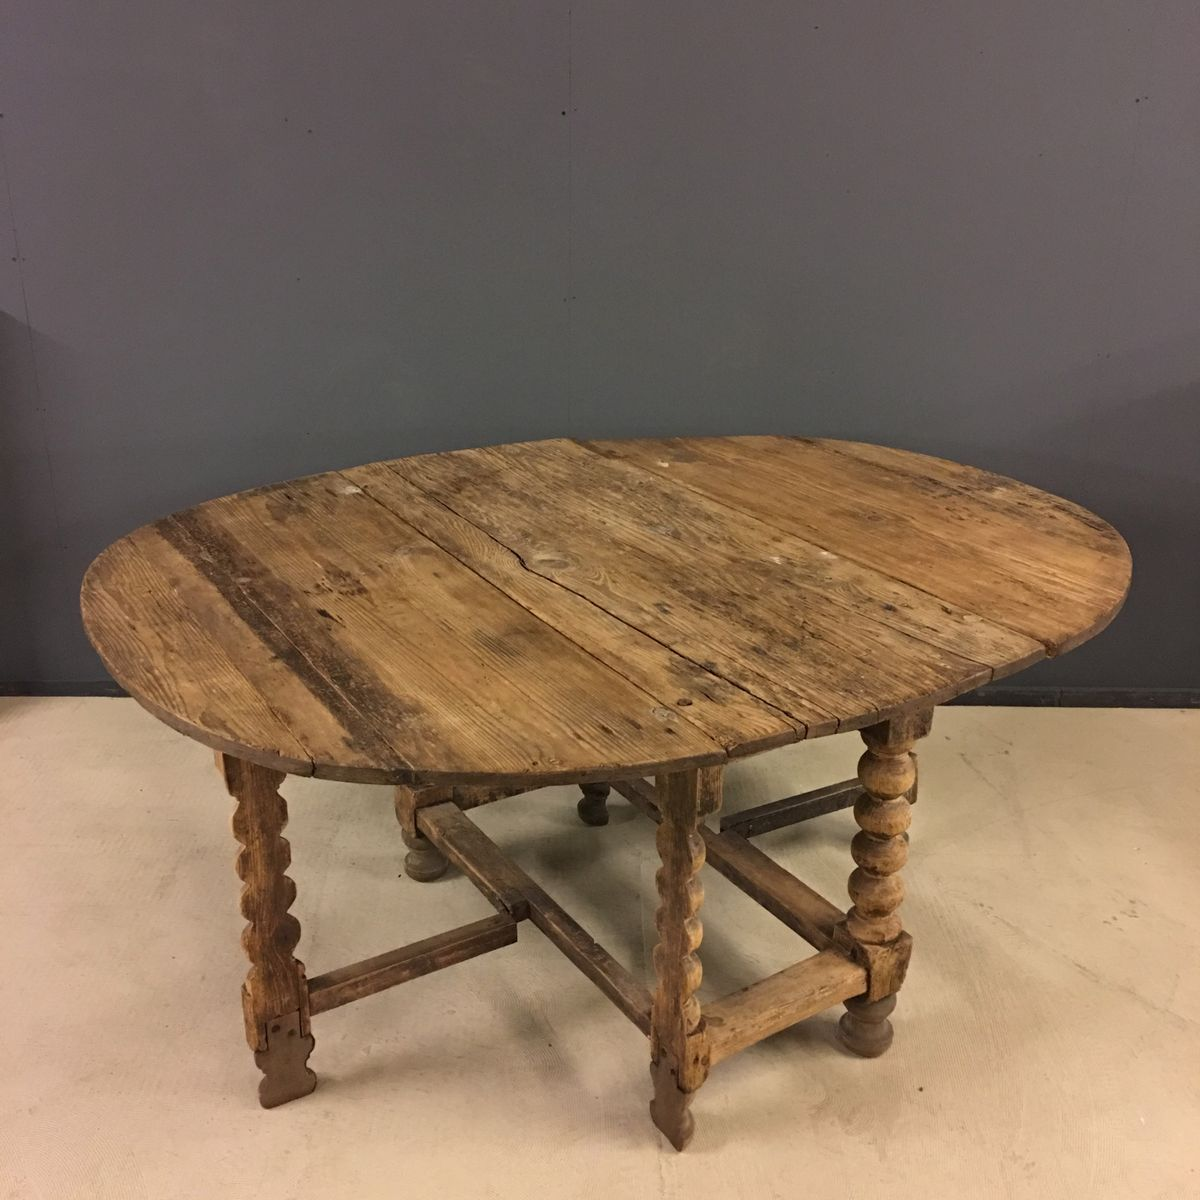 Swedish Oval Pine Gateleg Table Th Century For Sale At Pamono - Antique gateleg tables